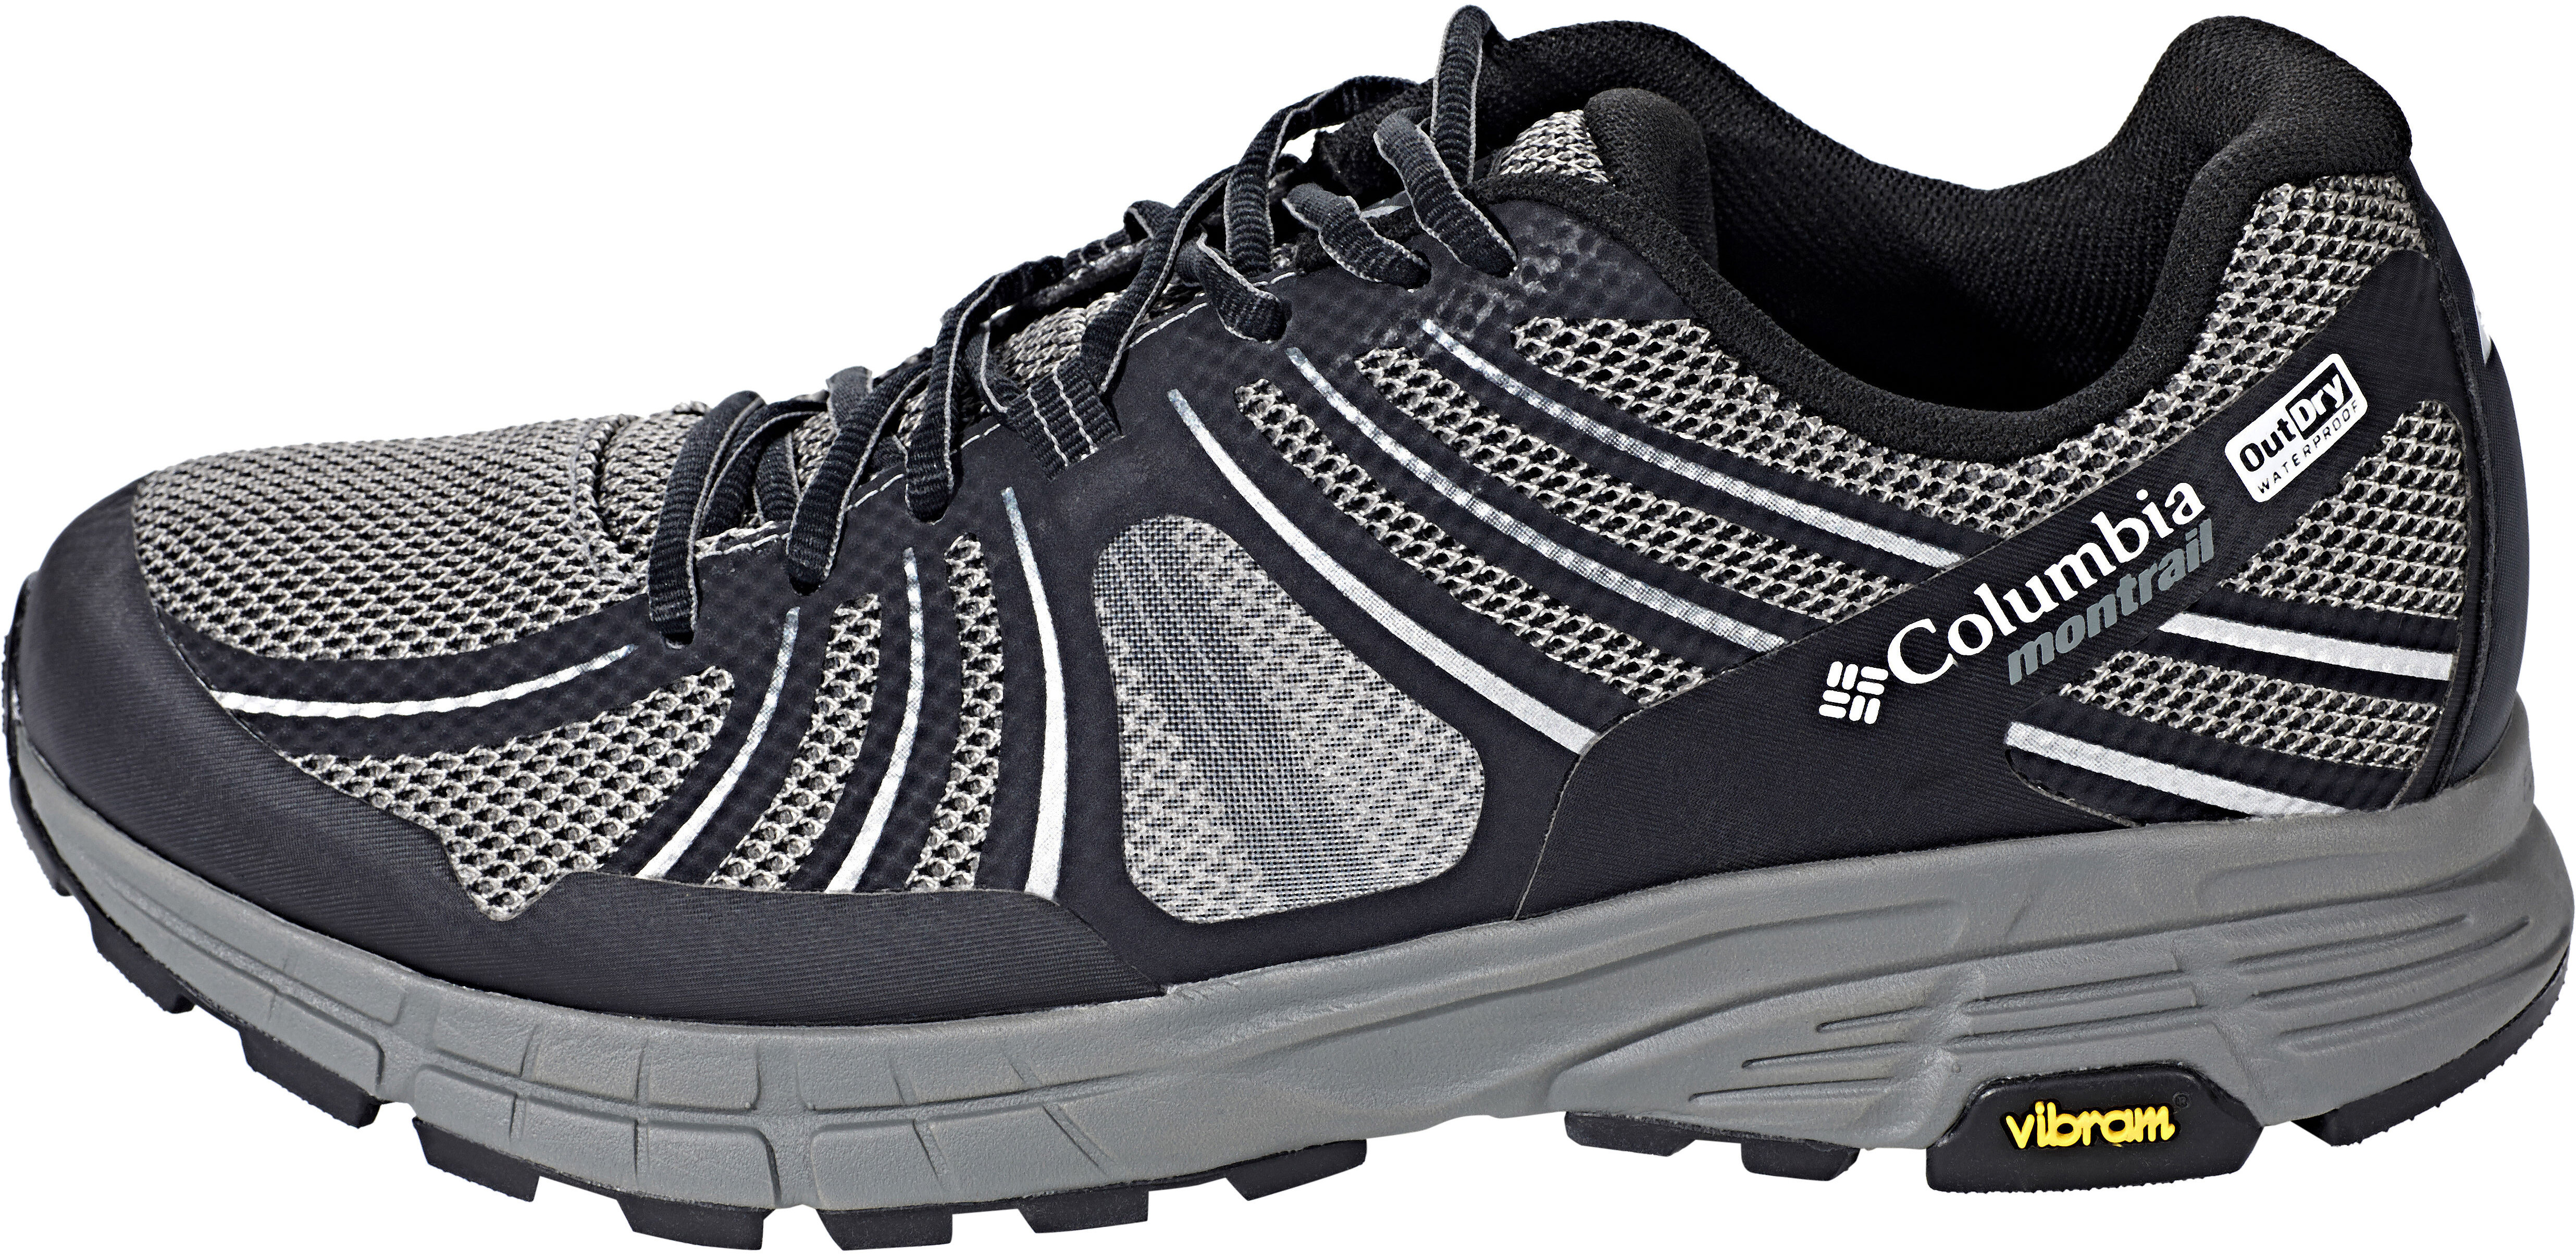 Columbia Mojave Trail Outdry Running Shoes Men grey at Bikester.co.uk 1fa21236653